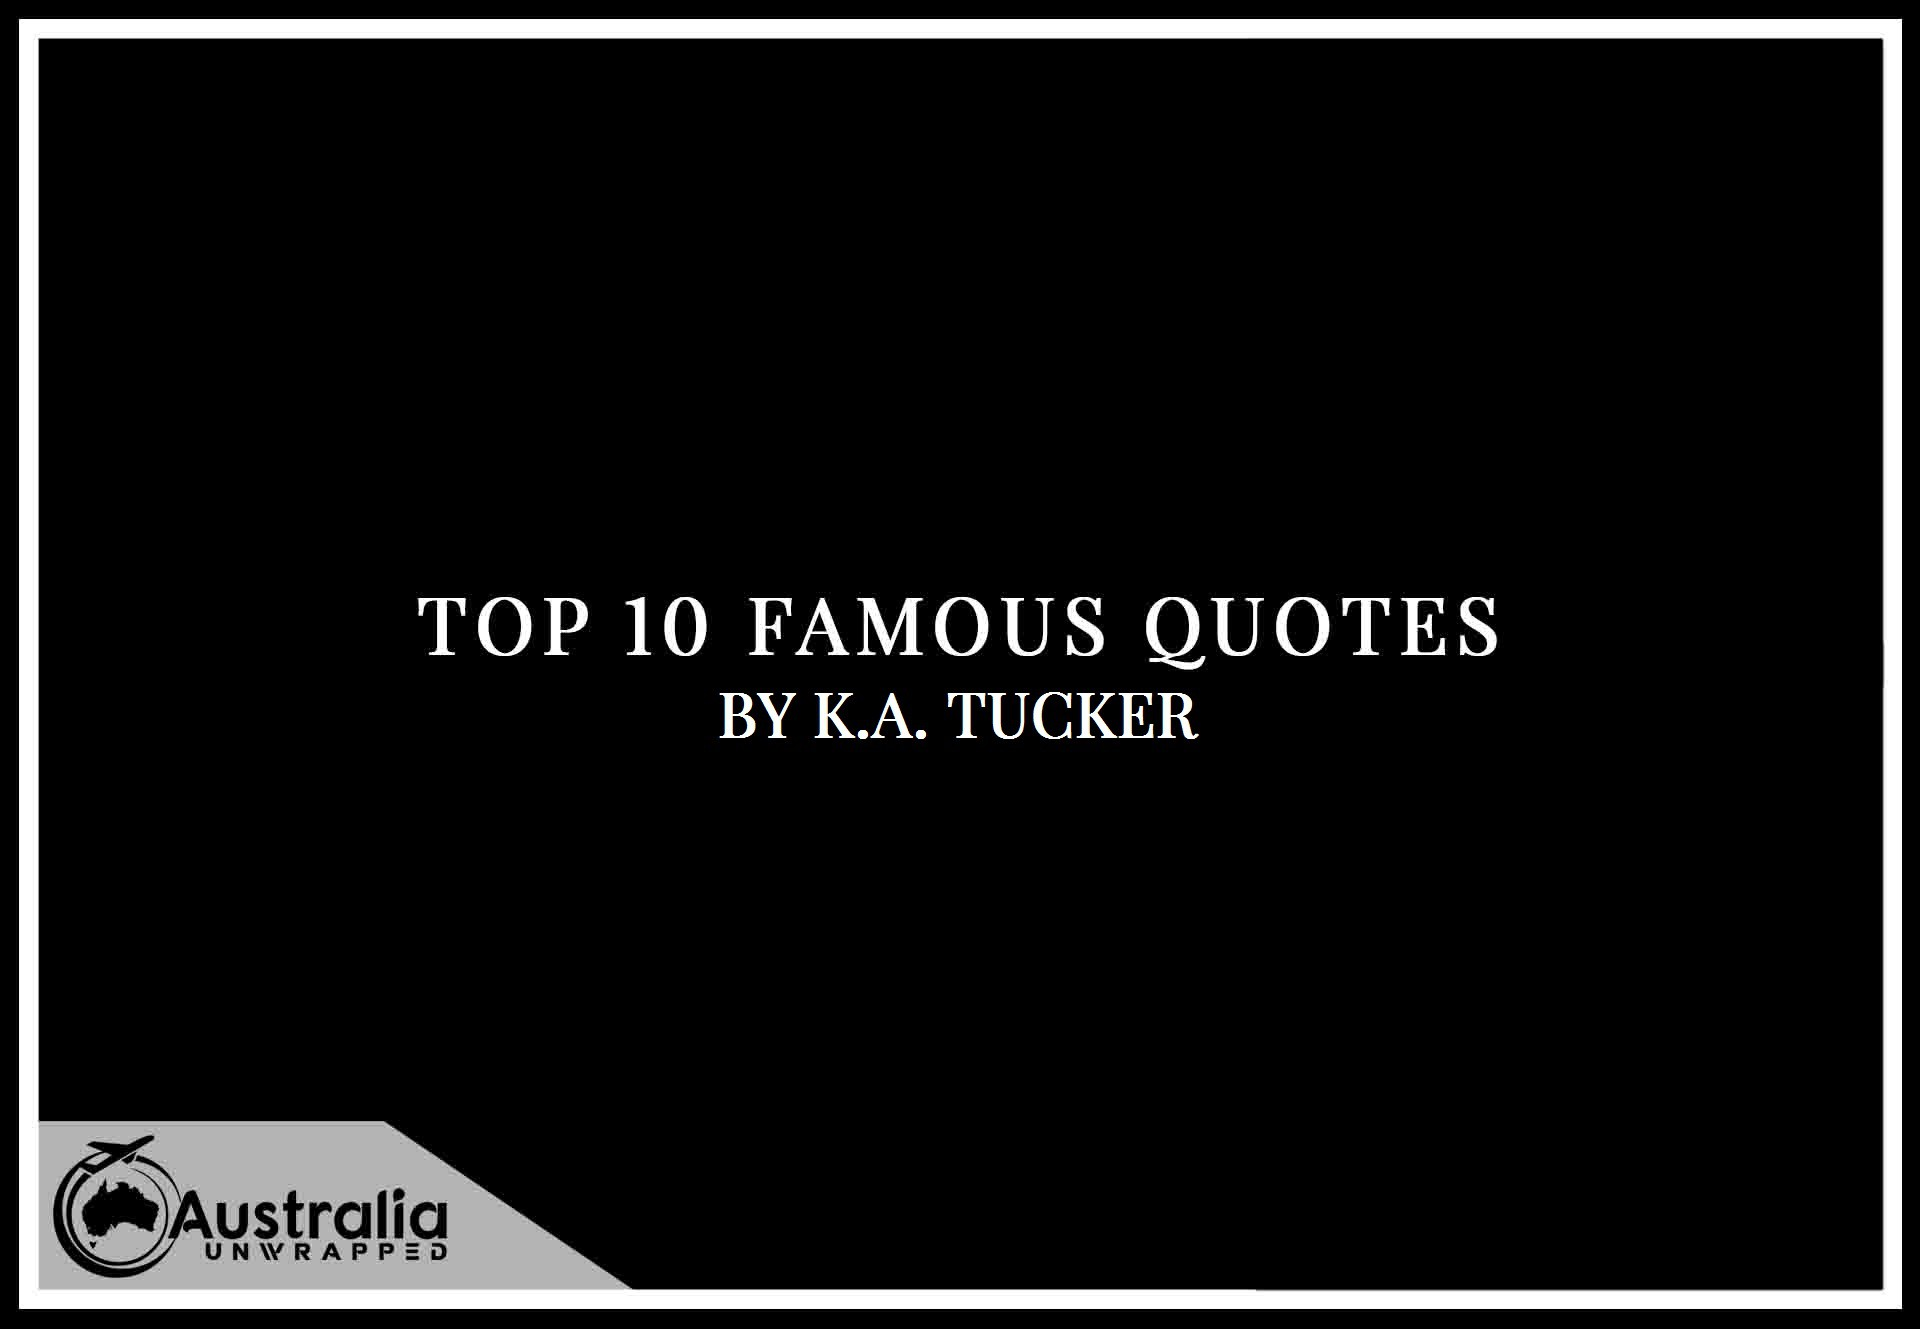 K.A. Tucker's Top 10 Popular and Famous Quotes